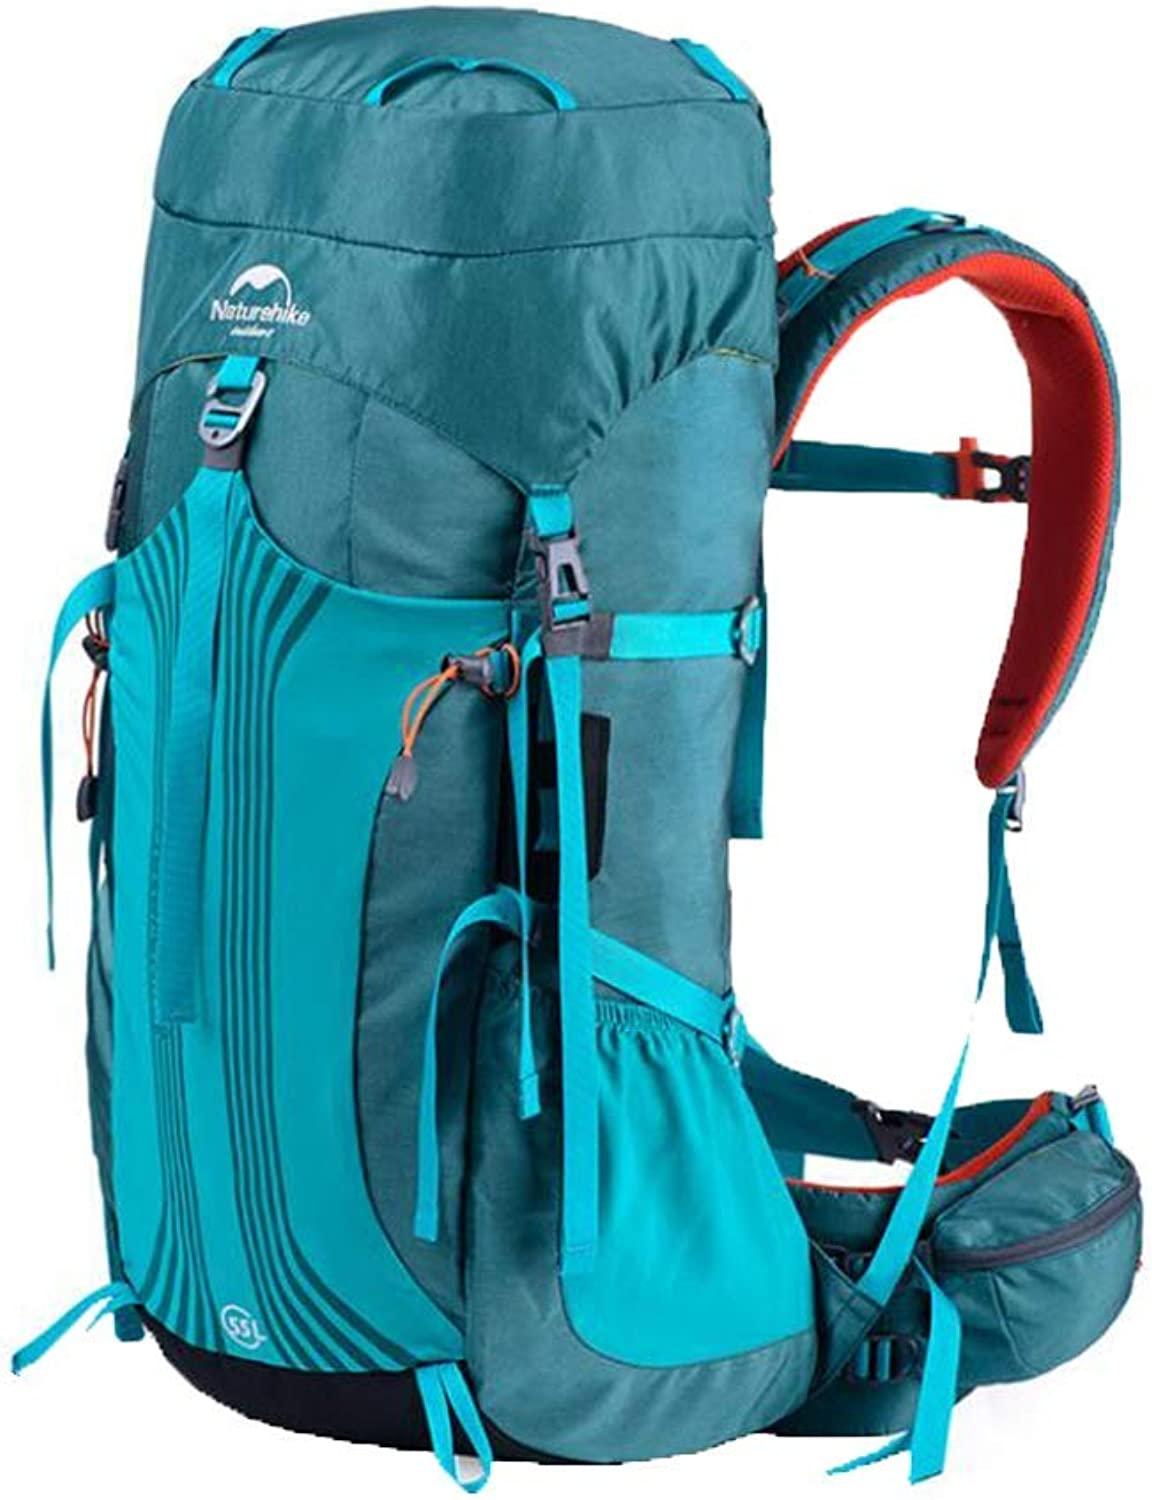 Climb Backpack 65Ltravel Backpack,Profession Mountaineering Outdoor Riding Camping Backpack